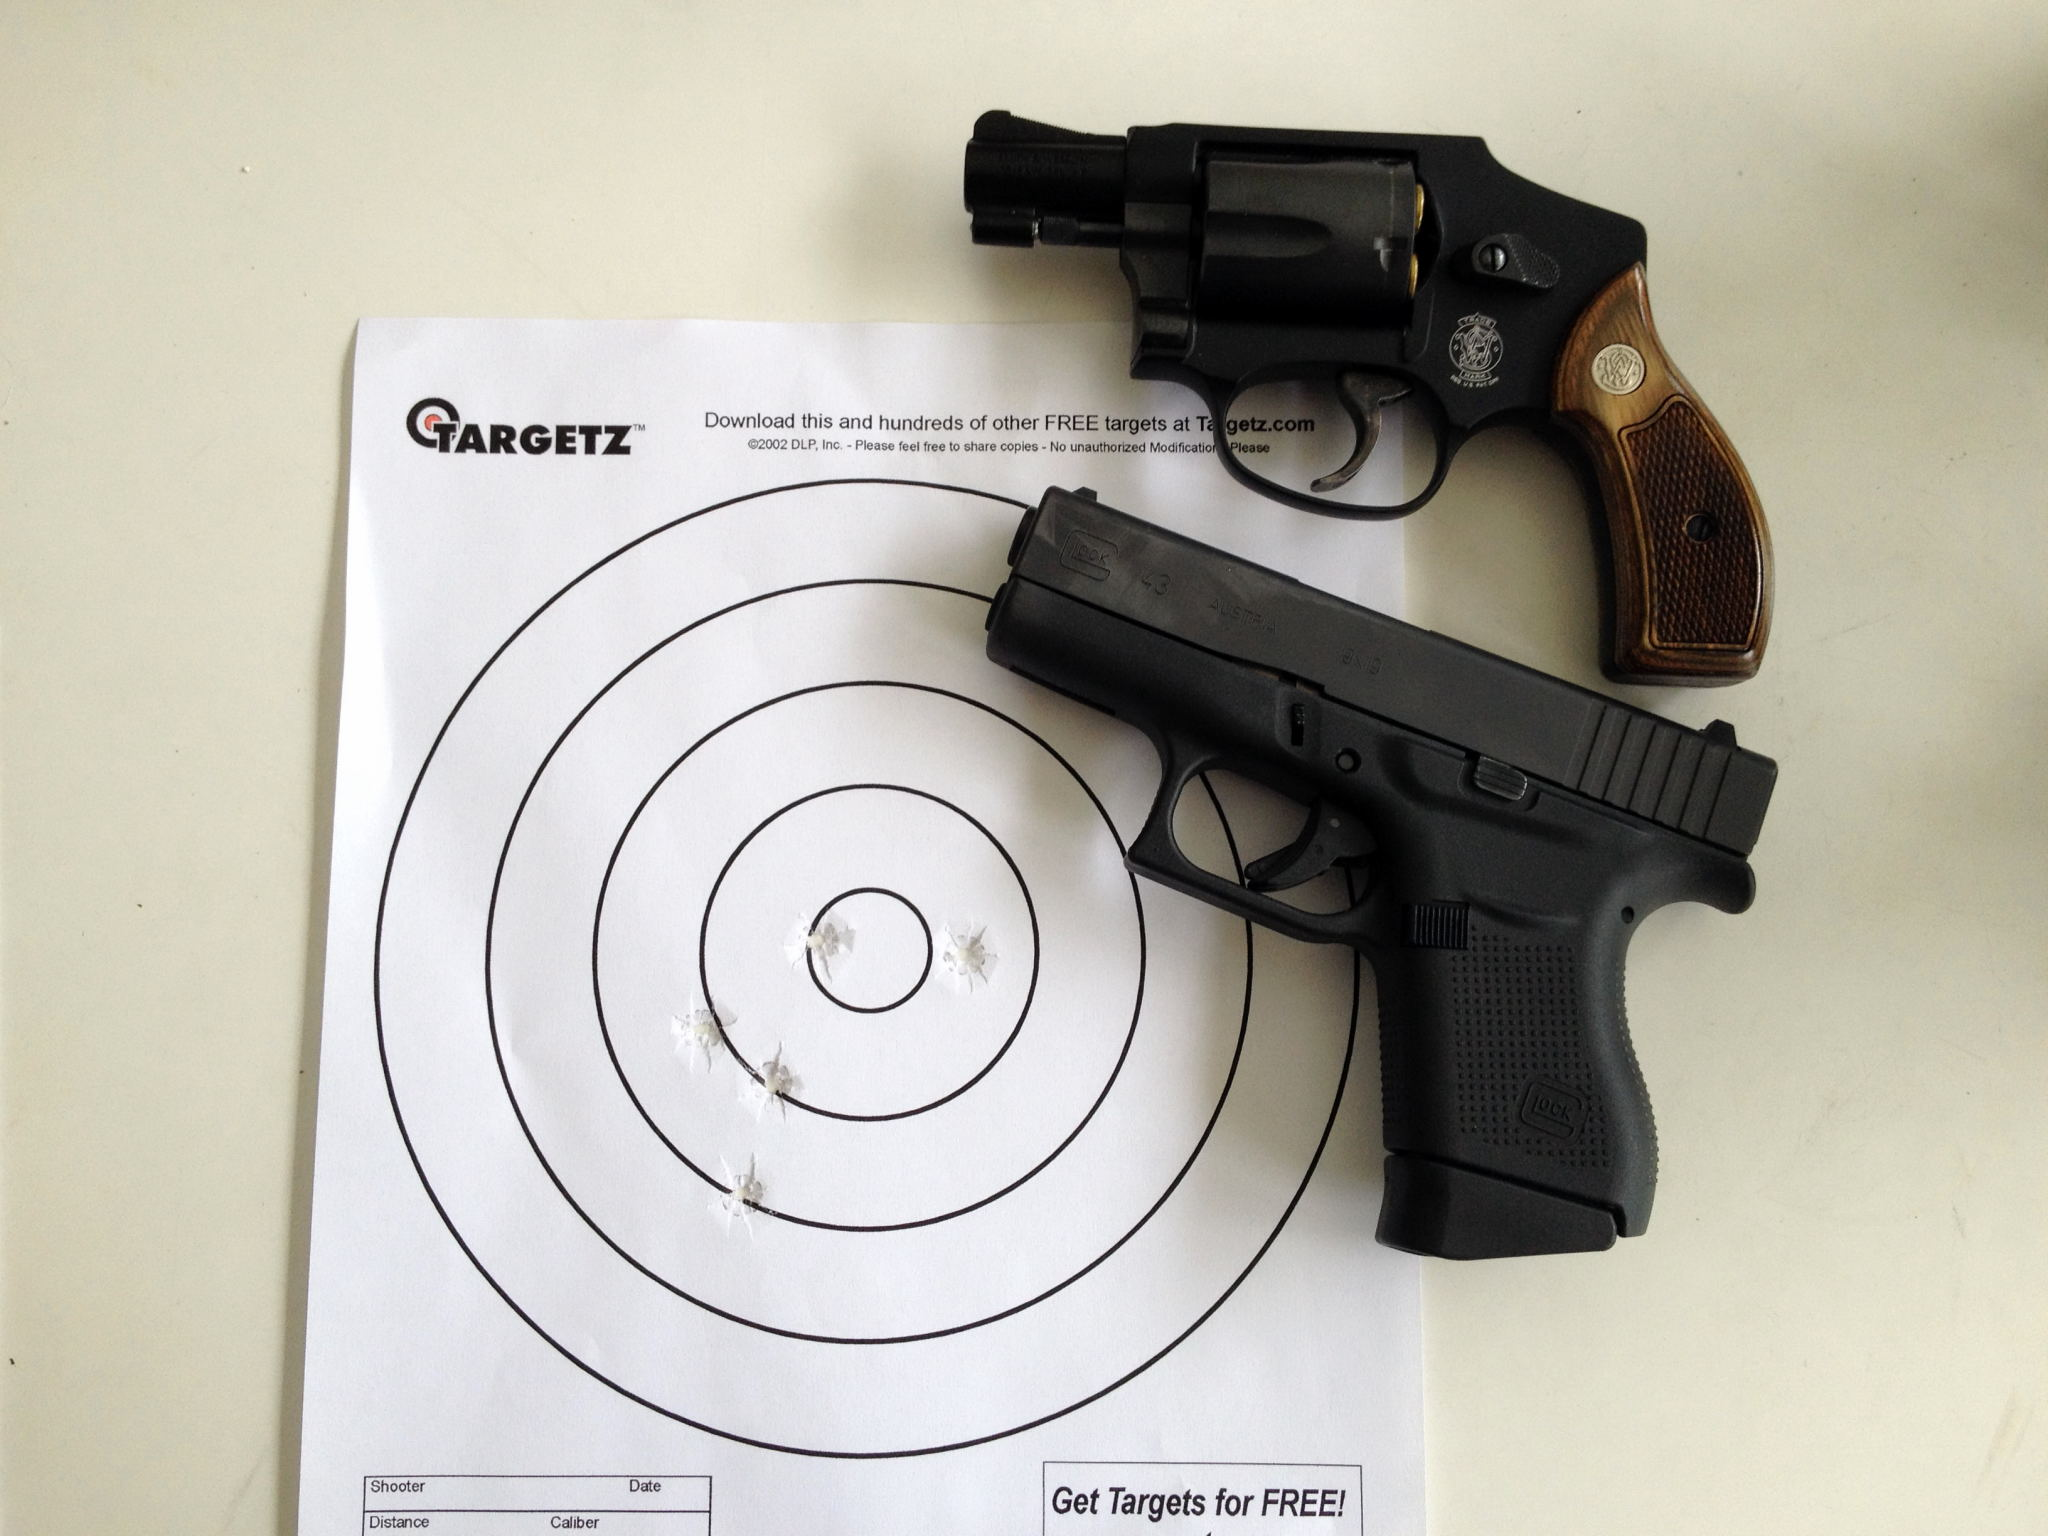 Glock 43 review & range report-glock-43-first-rounds-through-pistol.jpg